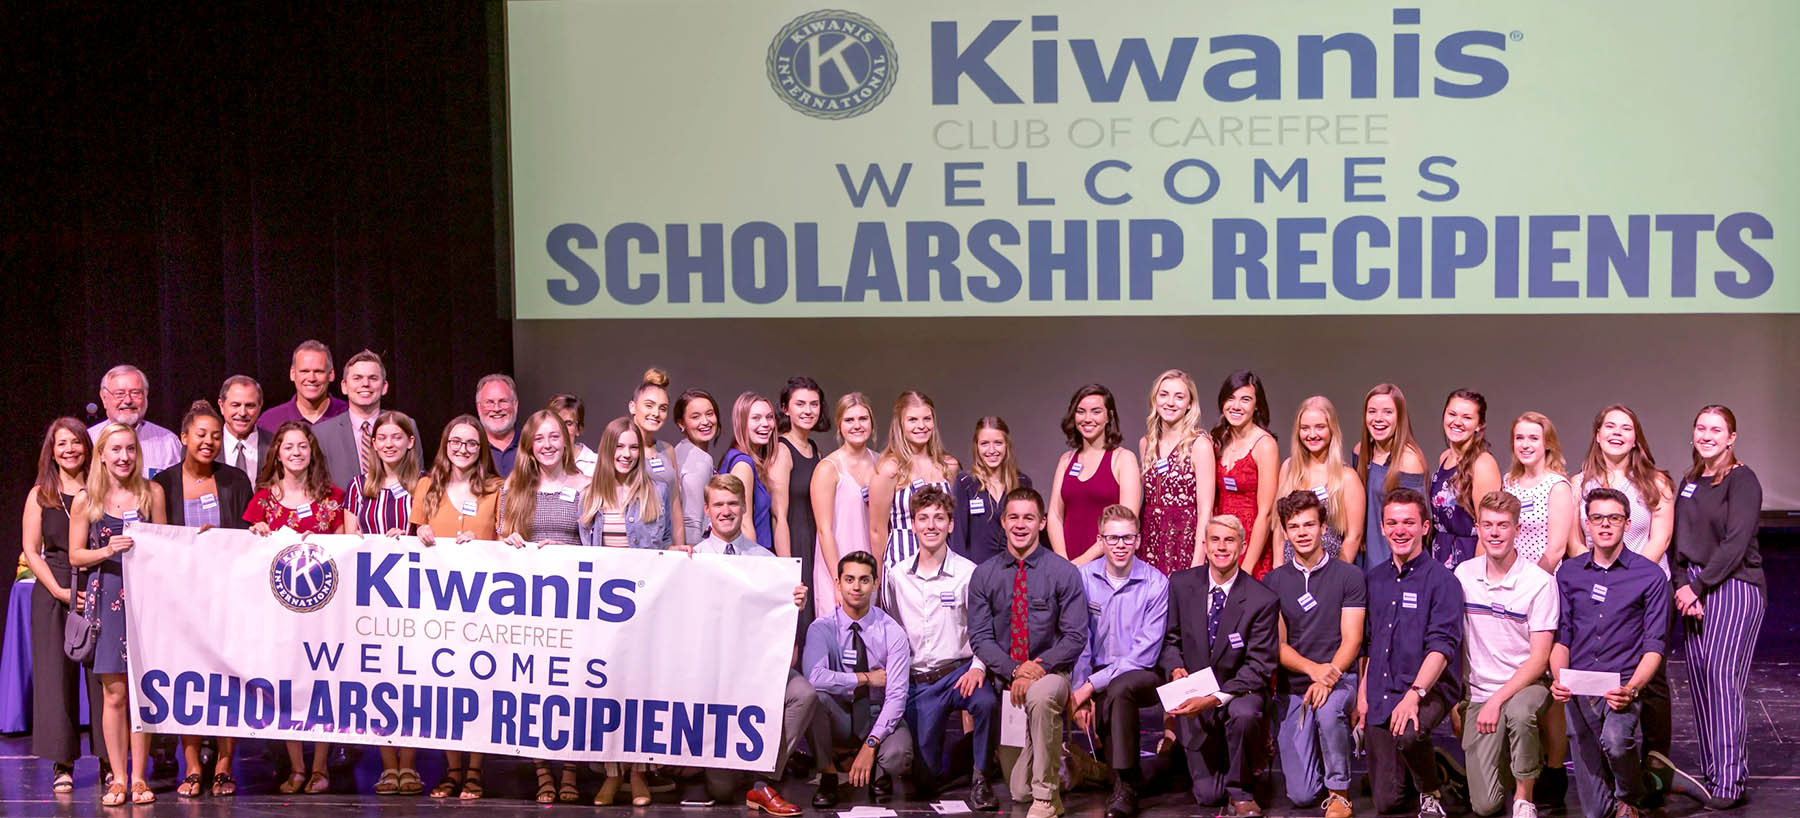 All Scholarship Recipients and Committee Members - Photo Taken By Bill Waters - 1800x800